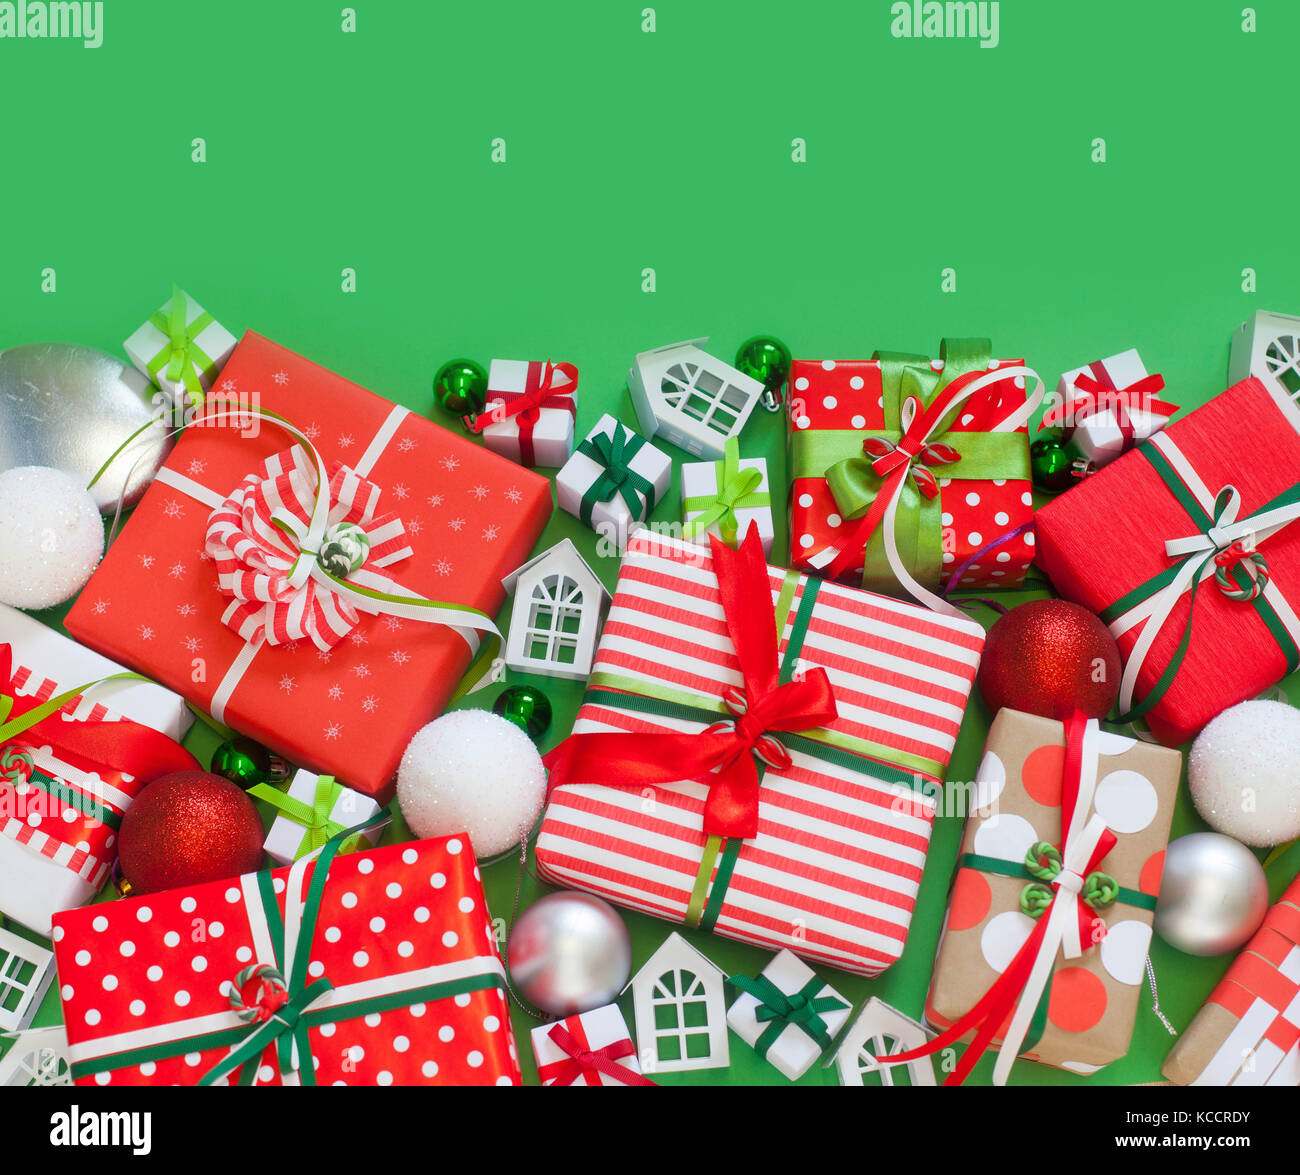 Christmas presents in red packaging. Satin colored ribbons. Green background. - Stock Image